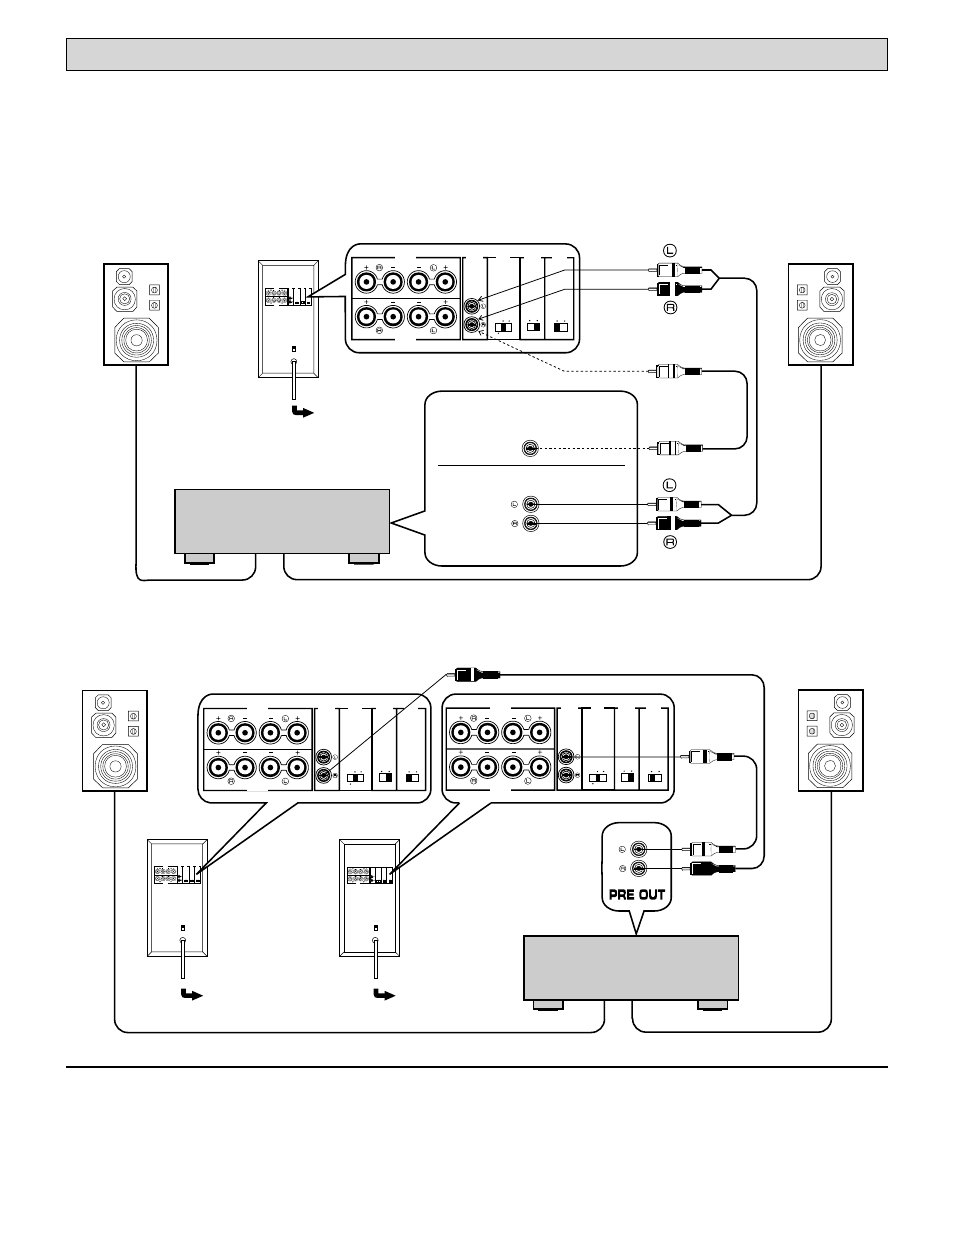 Using one unit using two units | Yamaha YST-SW160/90 User Manual